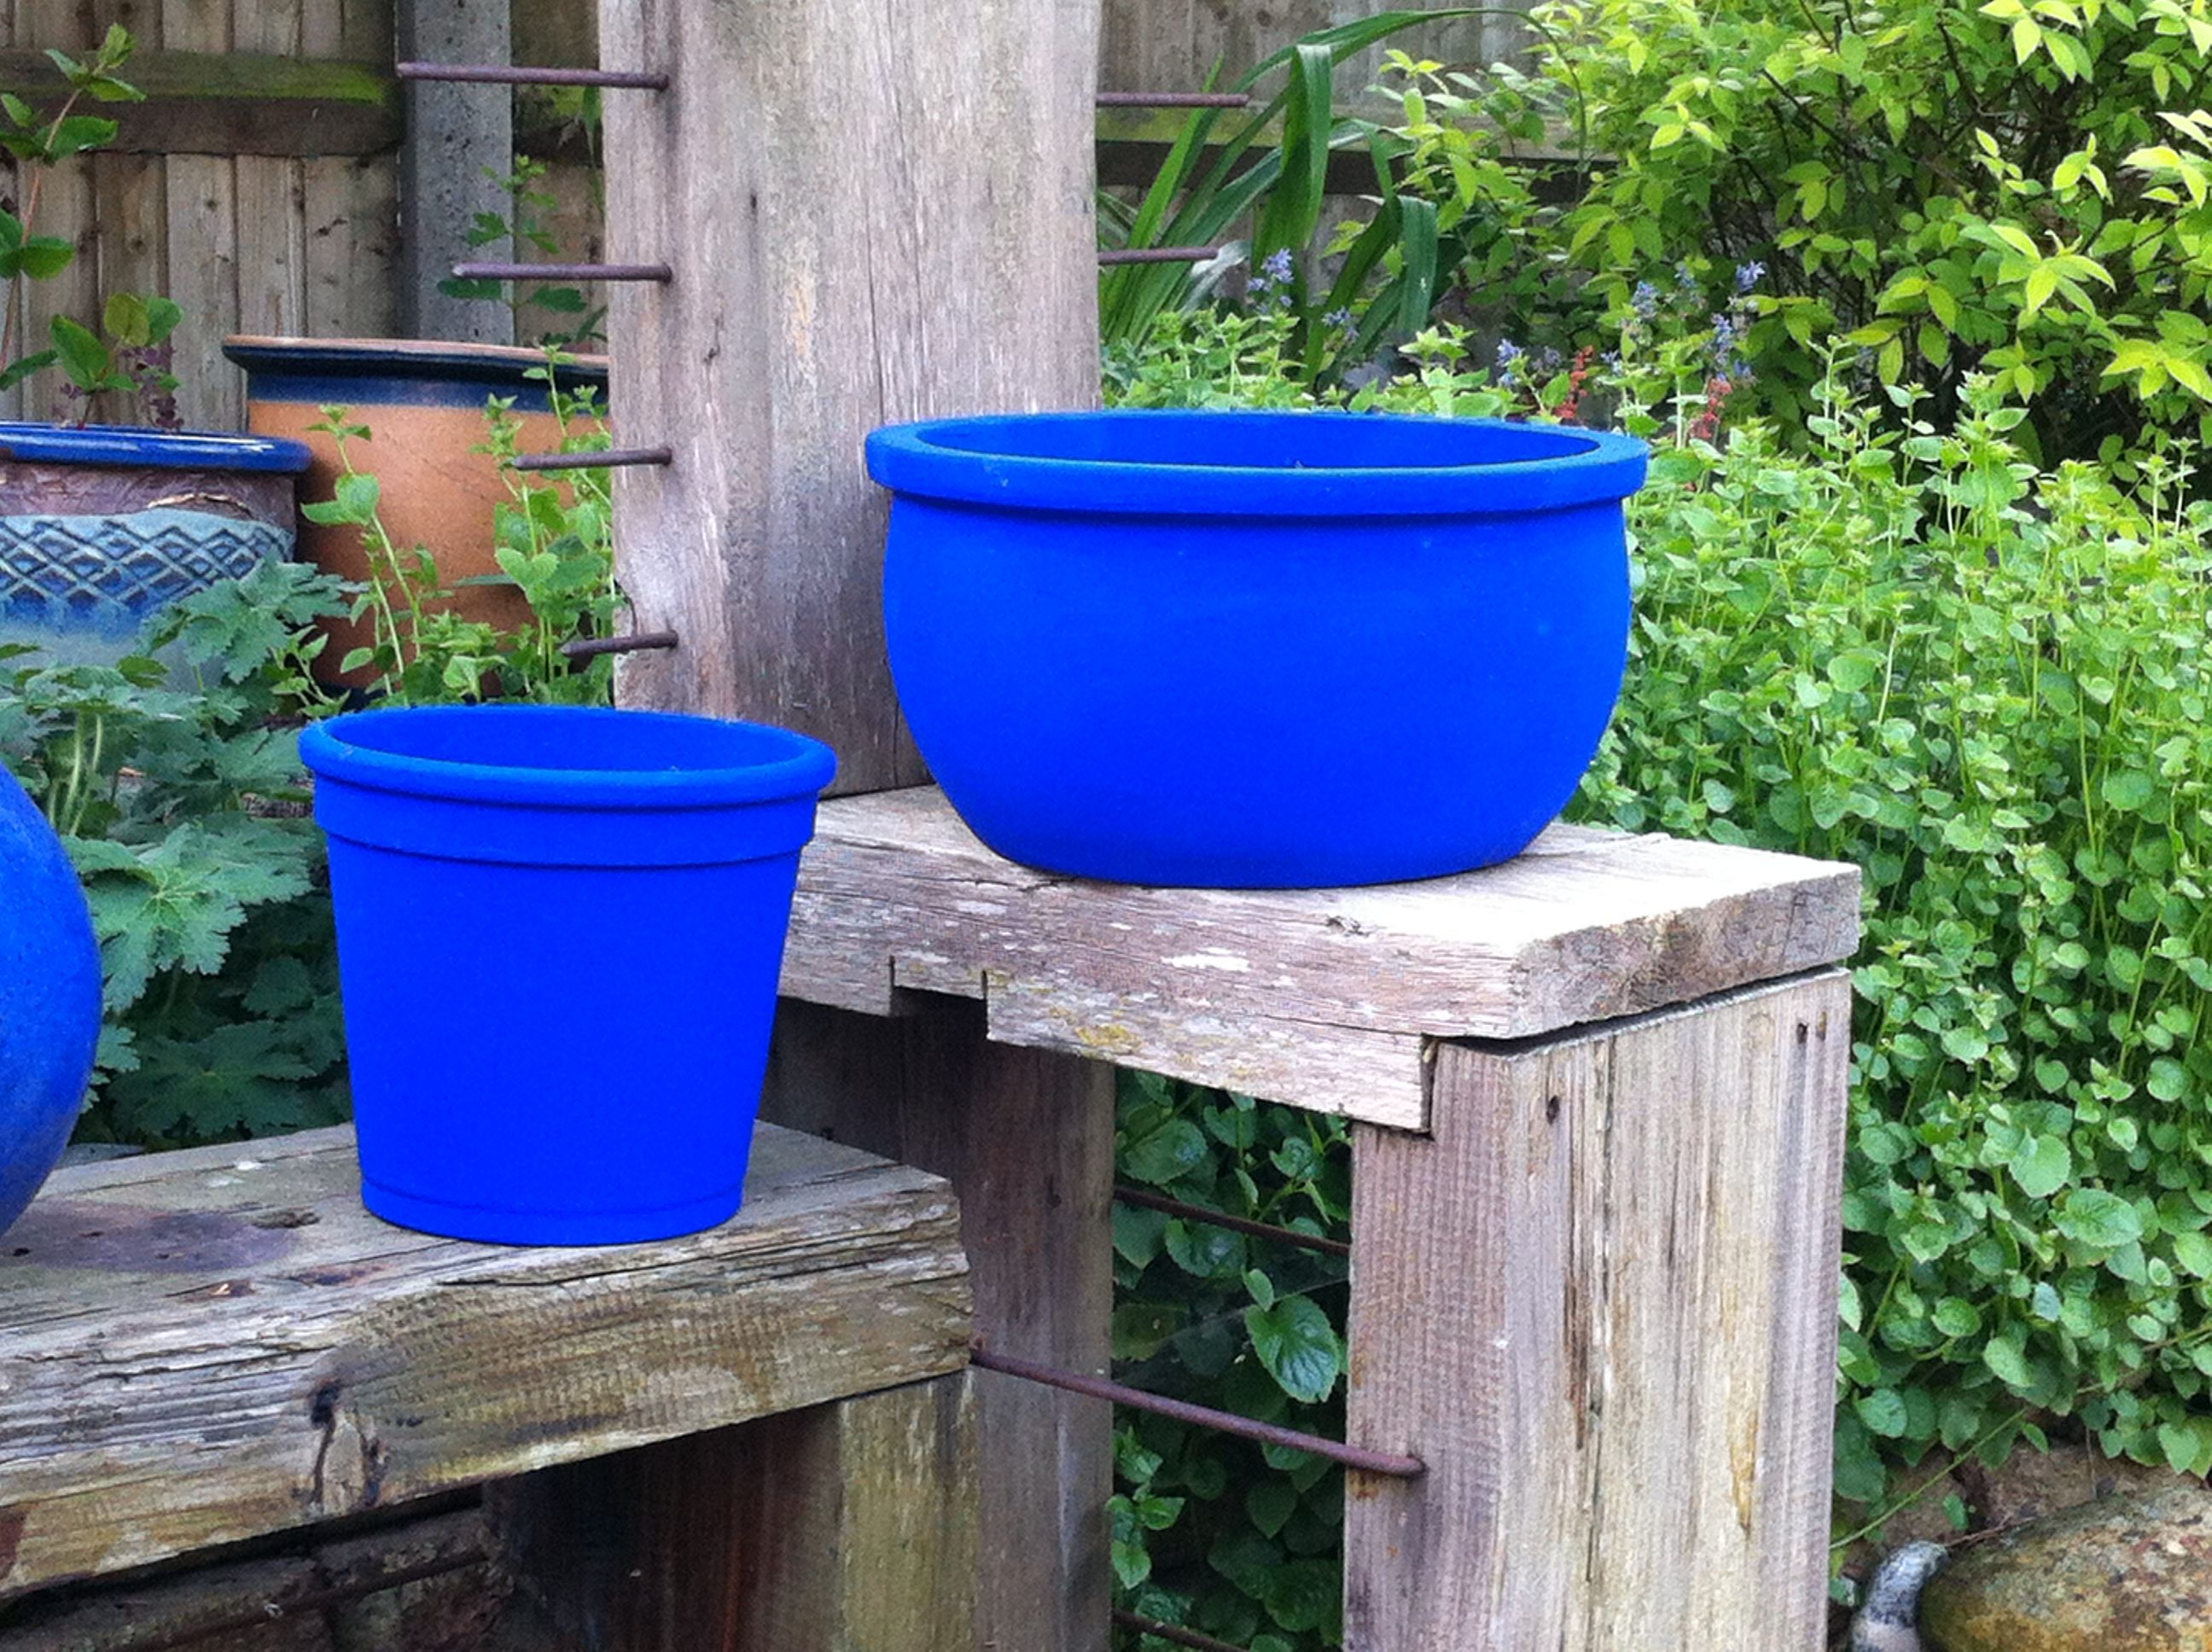 Garden Pots Painted With Bristol Paints Ultramarine Blue 1035 As Near A Match